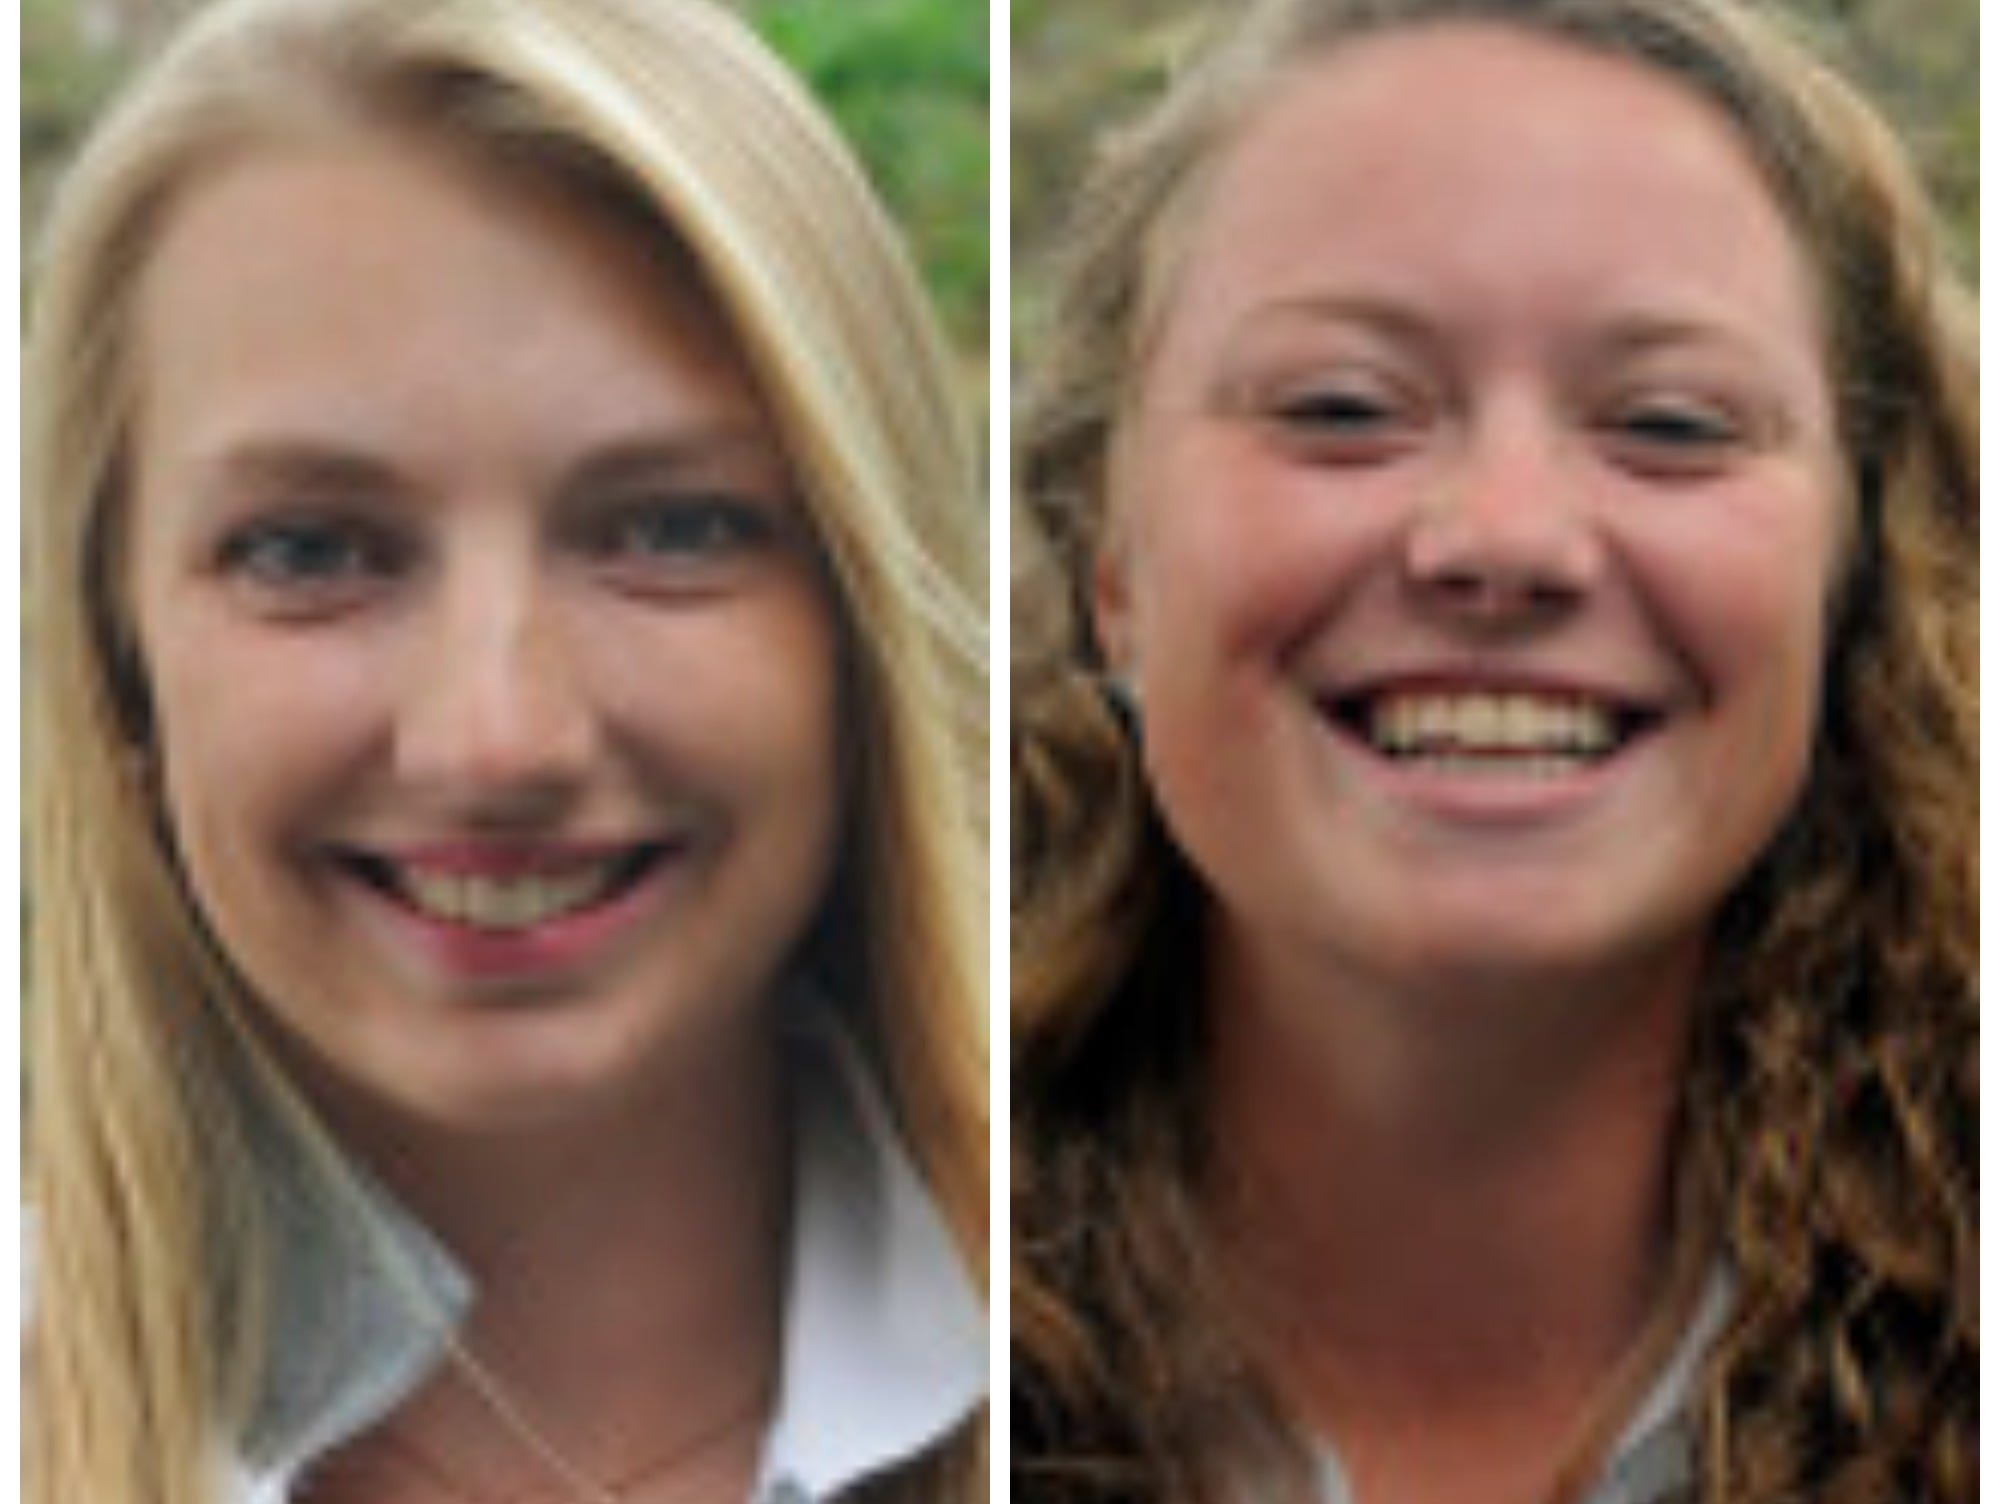 Elle Nichols and Alyssa Albright helped the Oakland University women's golf team win its first league title in program history.